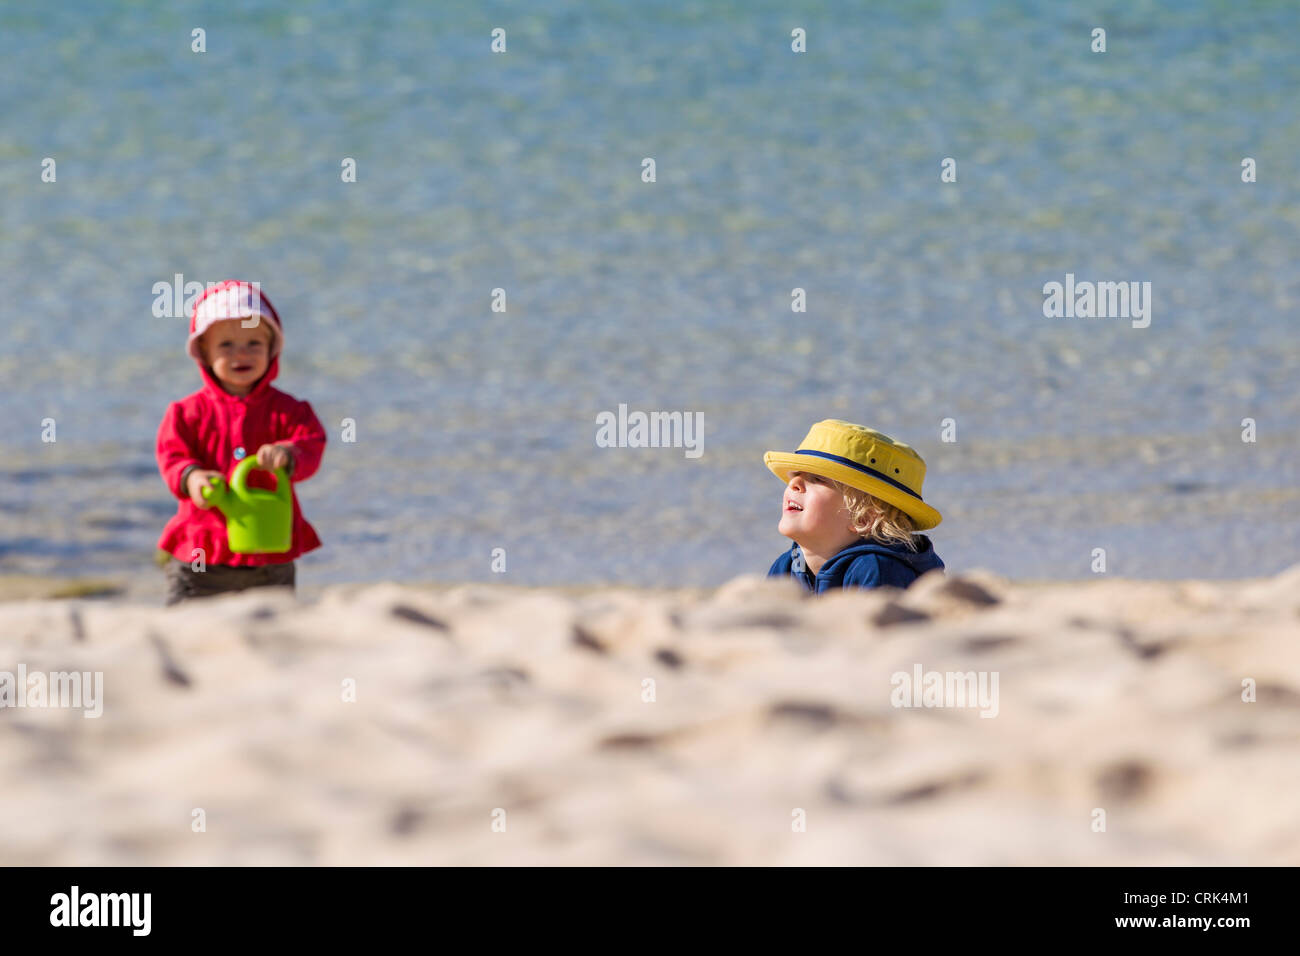 Children playing on sandy beach - Stock Image